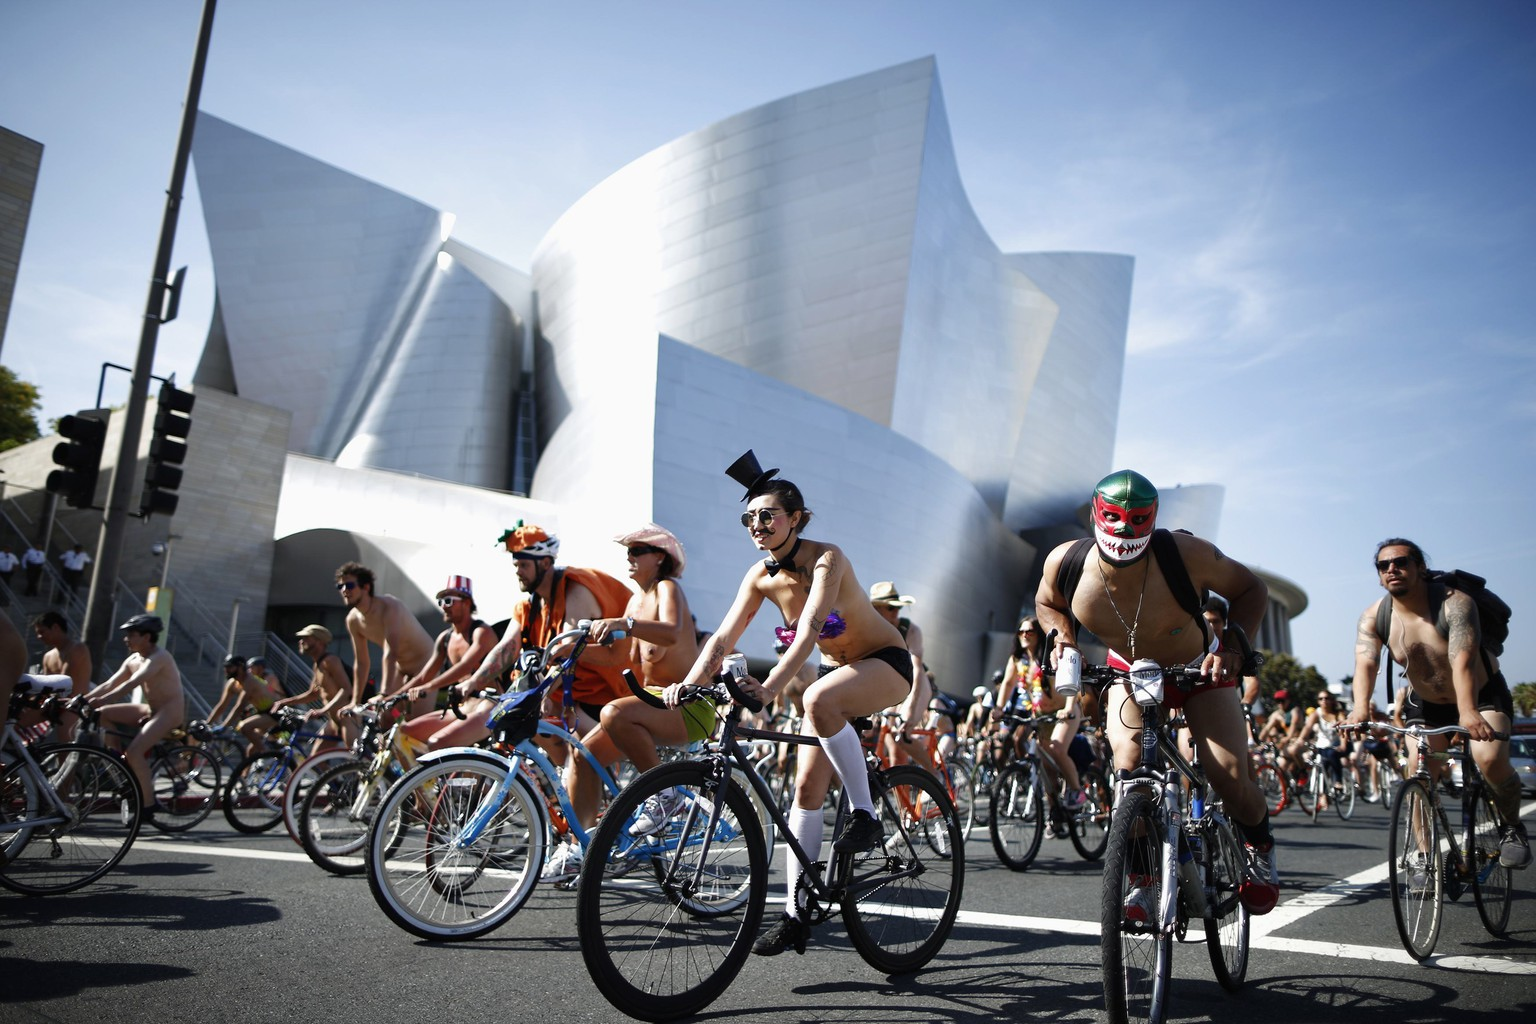 People ride past the Walt Disney Concert Hall, designed by Frank Gehry, in the World Naked Bike Ride in Los Angeles, California June 14, 2014. The event aims to defend the right of cyclists to ride on the streets in safety, according to organisers. REUTERS/Lucy Nicholson (UNITED STATES - Tags: SPORT CYCLING SOCIETY TRANSPORT TPX IMAGES OF THE DAY) TEMPLATE OUT